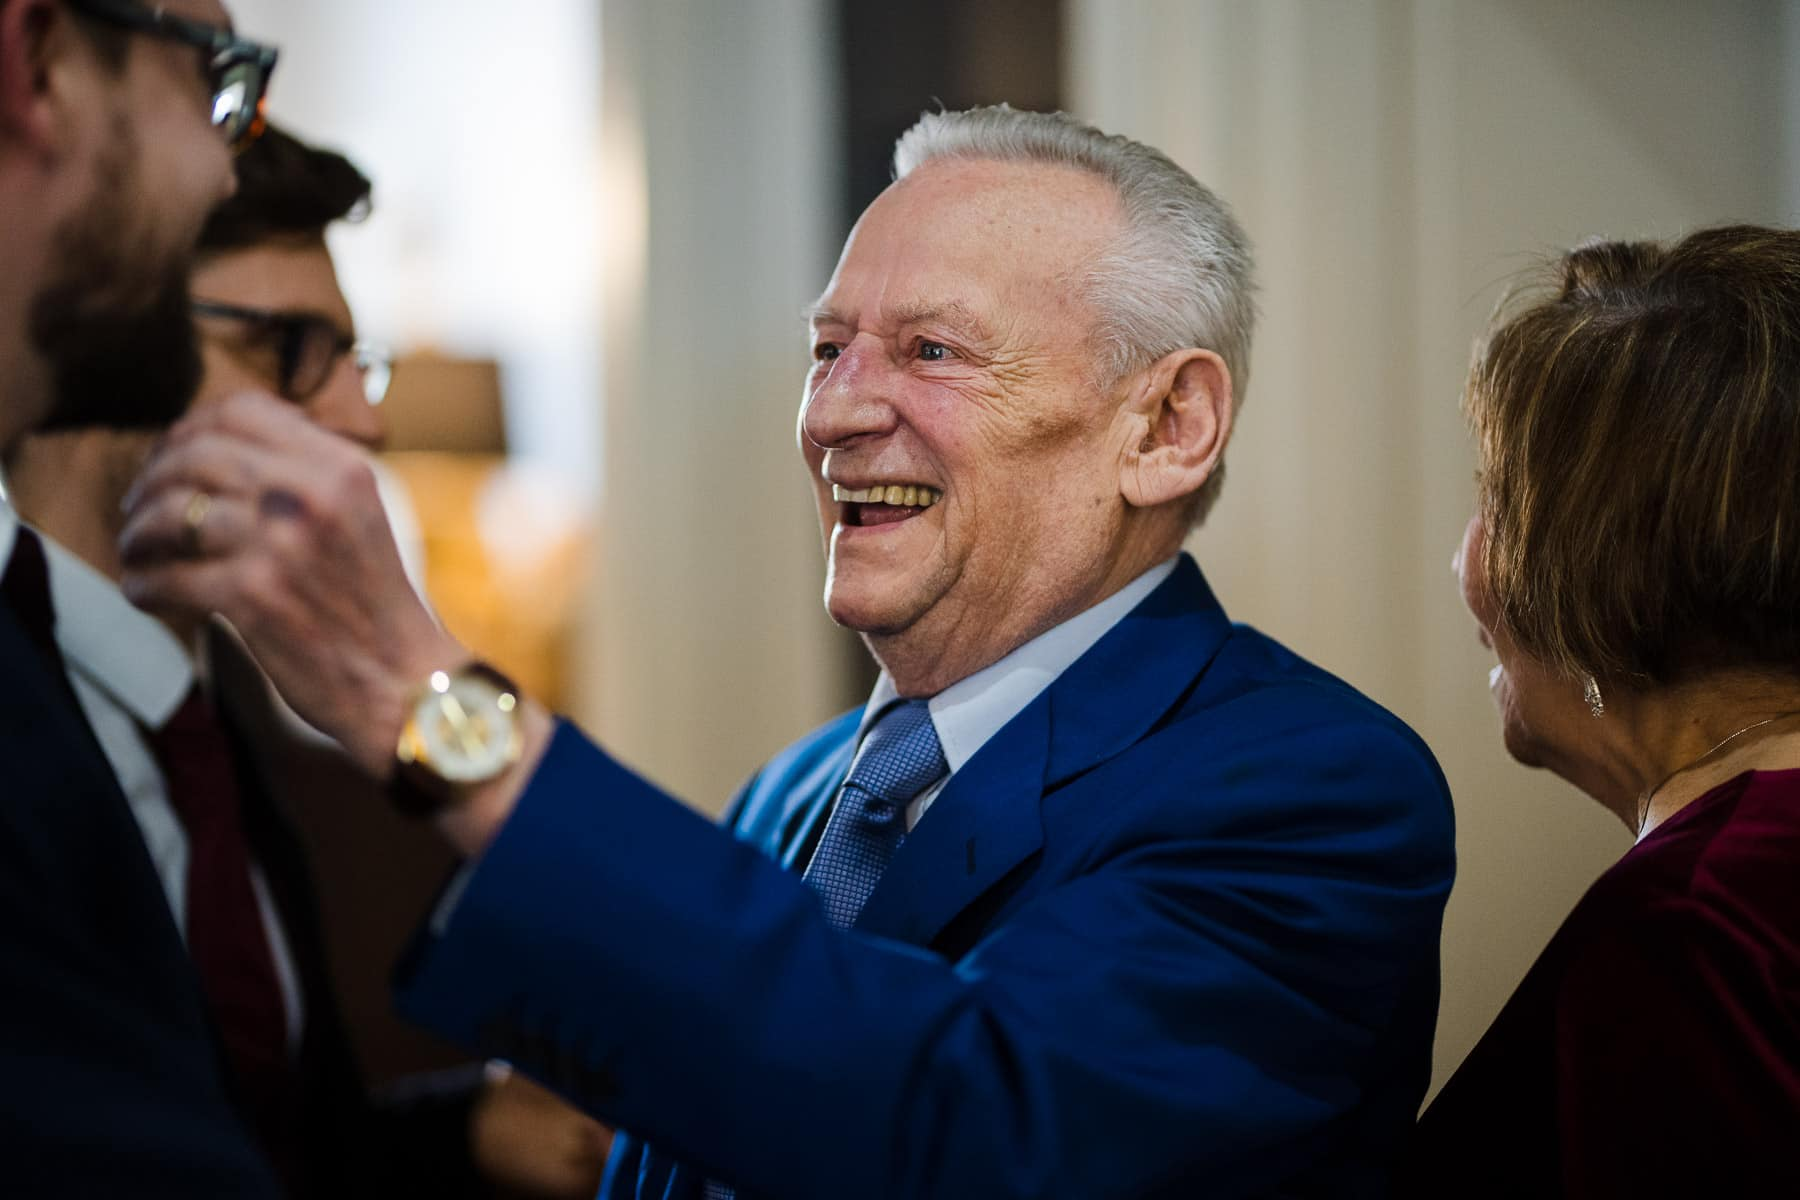 Grandad arriving and smiling at groom